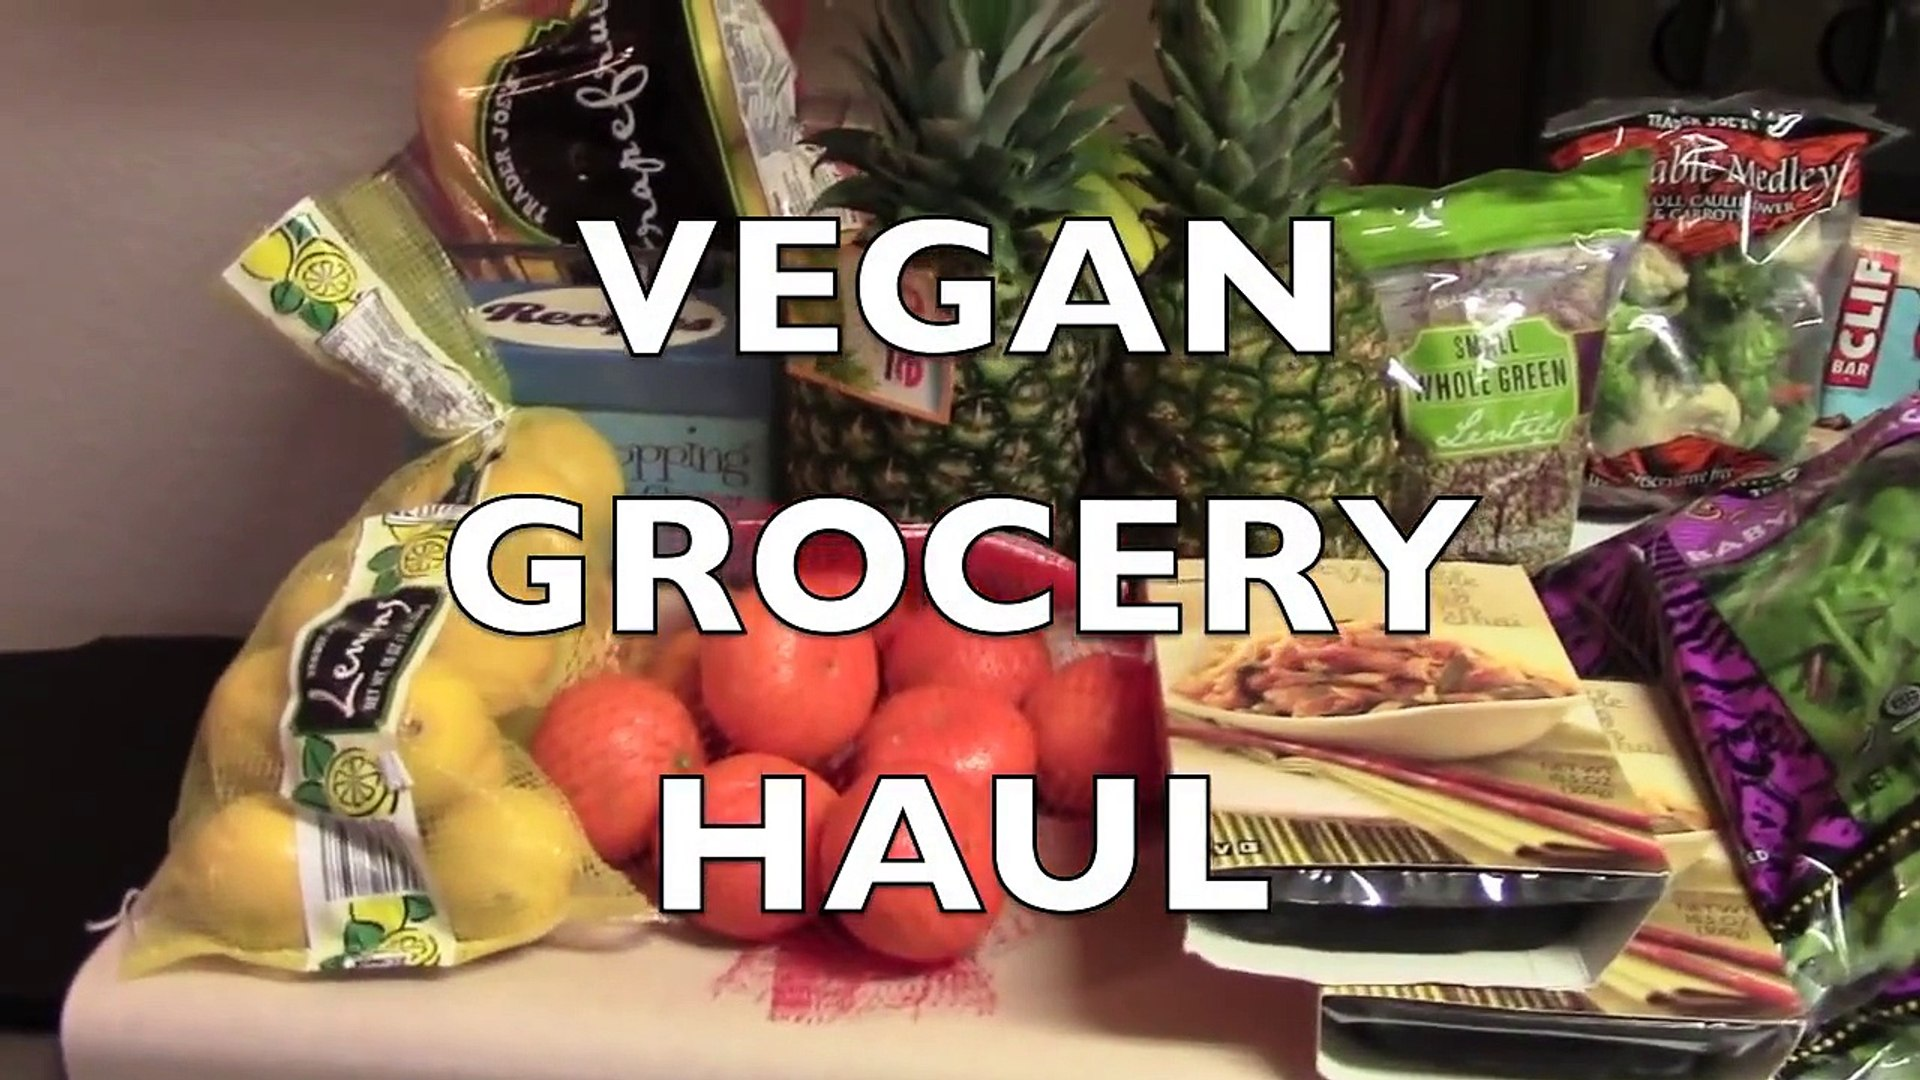 VEGAN GROCERY HAUL + NEW VEGAN FOODS